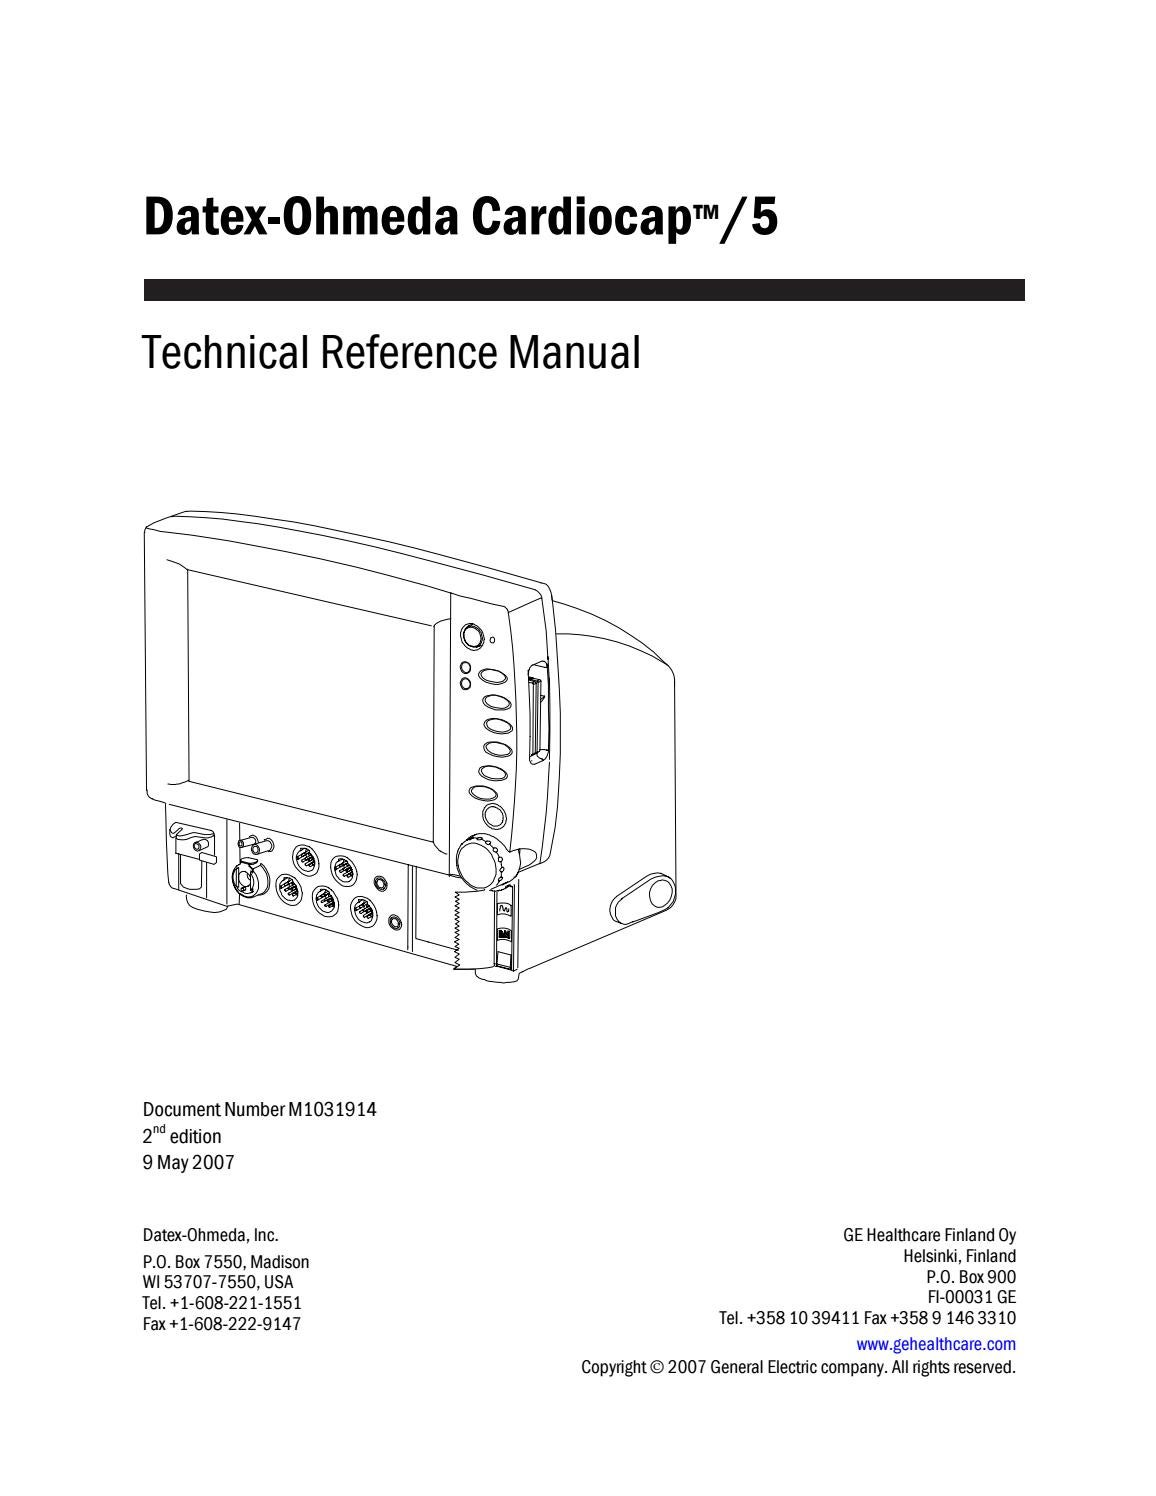 Datex ohmeda cardiocap 5 service manual (2007) by Guillermo Cervantes Gomez  - issuu